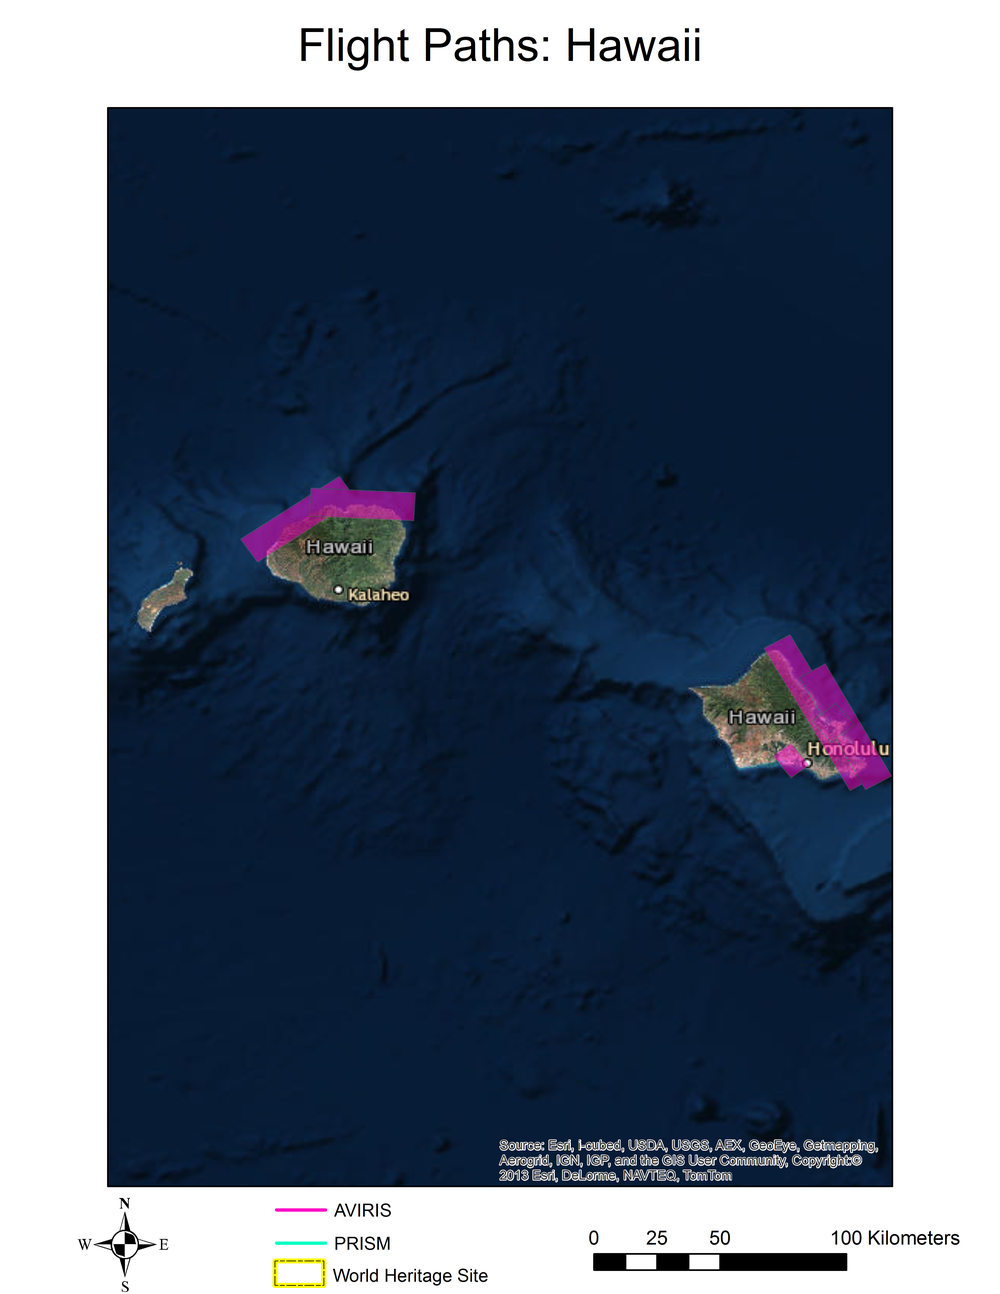 Flight Paths-Hawaii West_AVIRIS.png